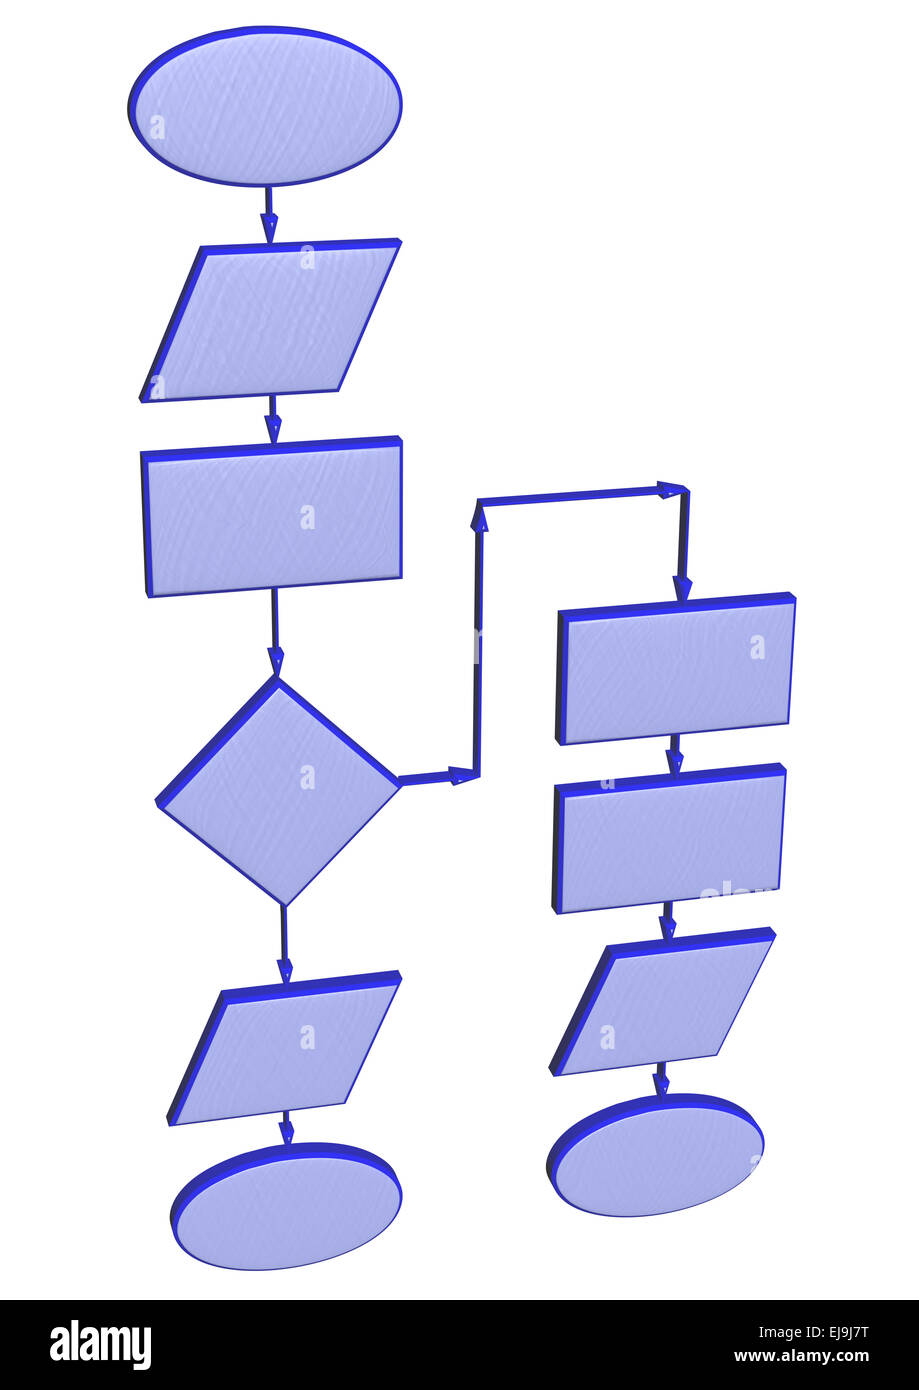 Project flow chart diagram stock photo royalty free image project flow chart diagram nvjuhfo Choice Image